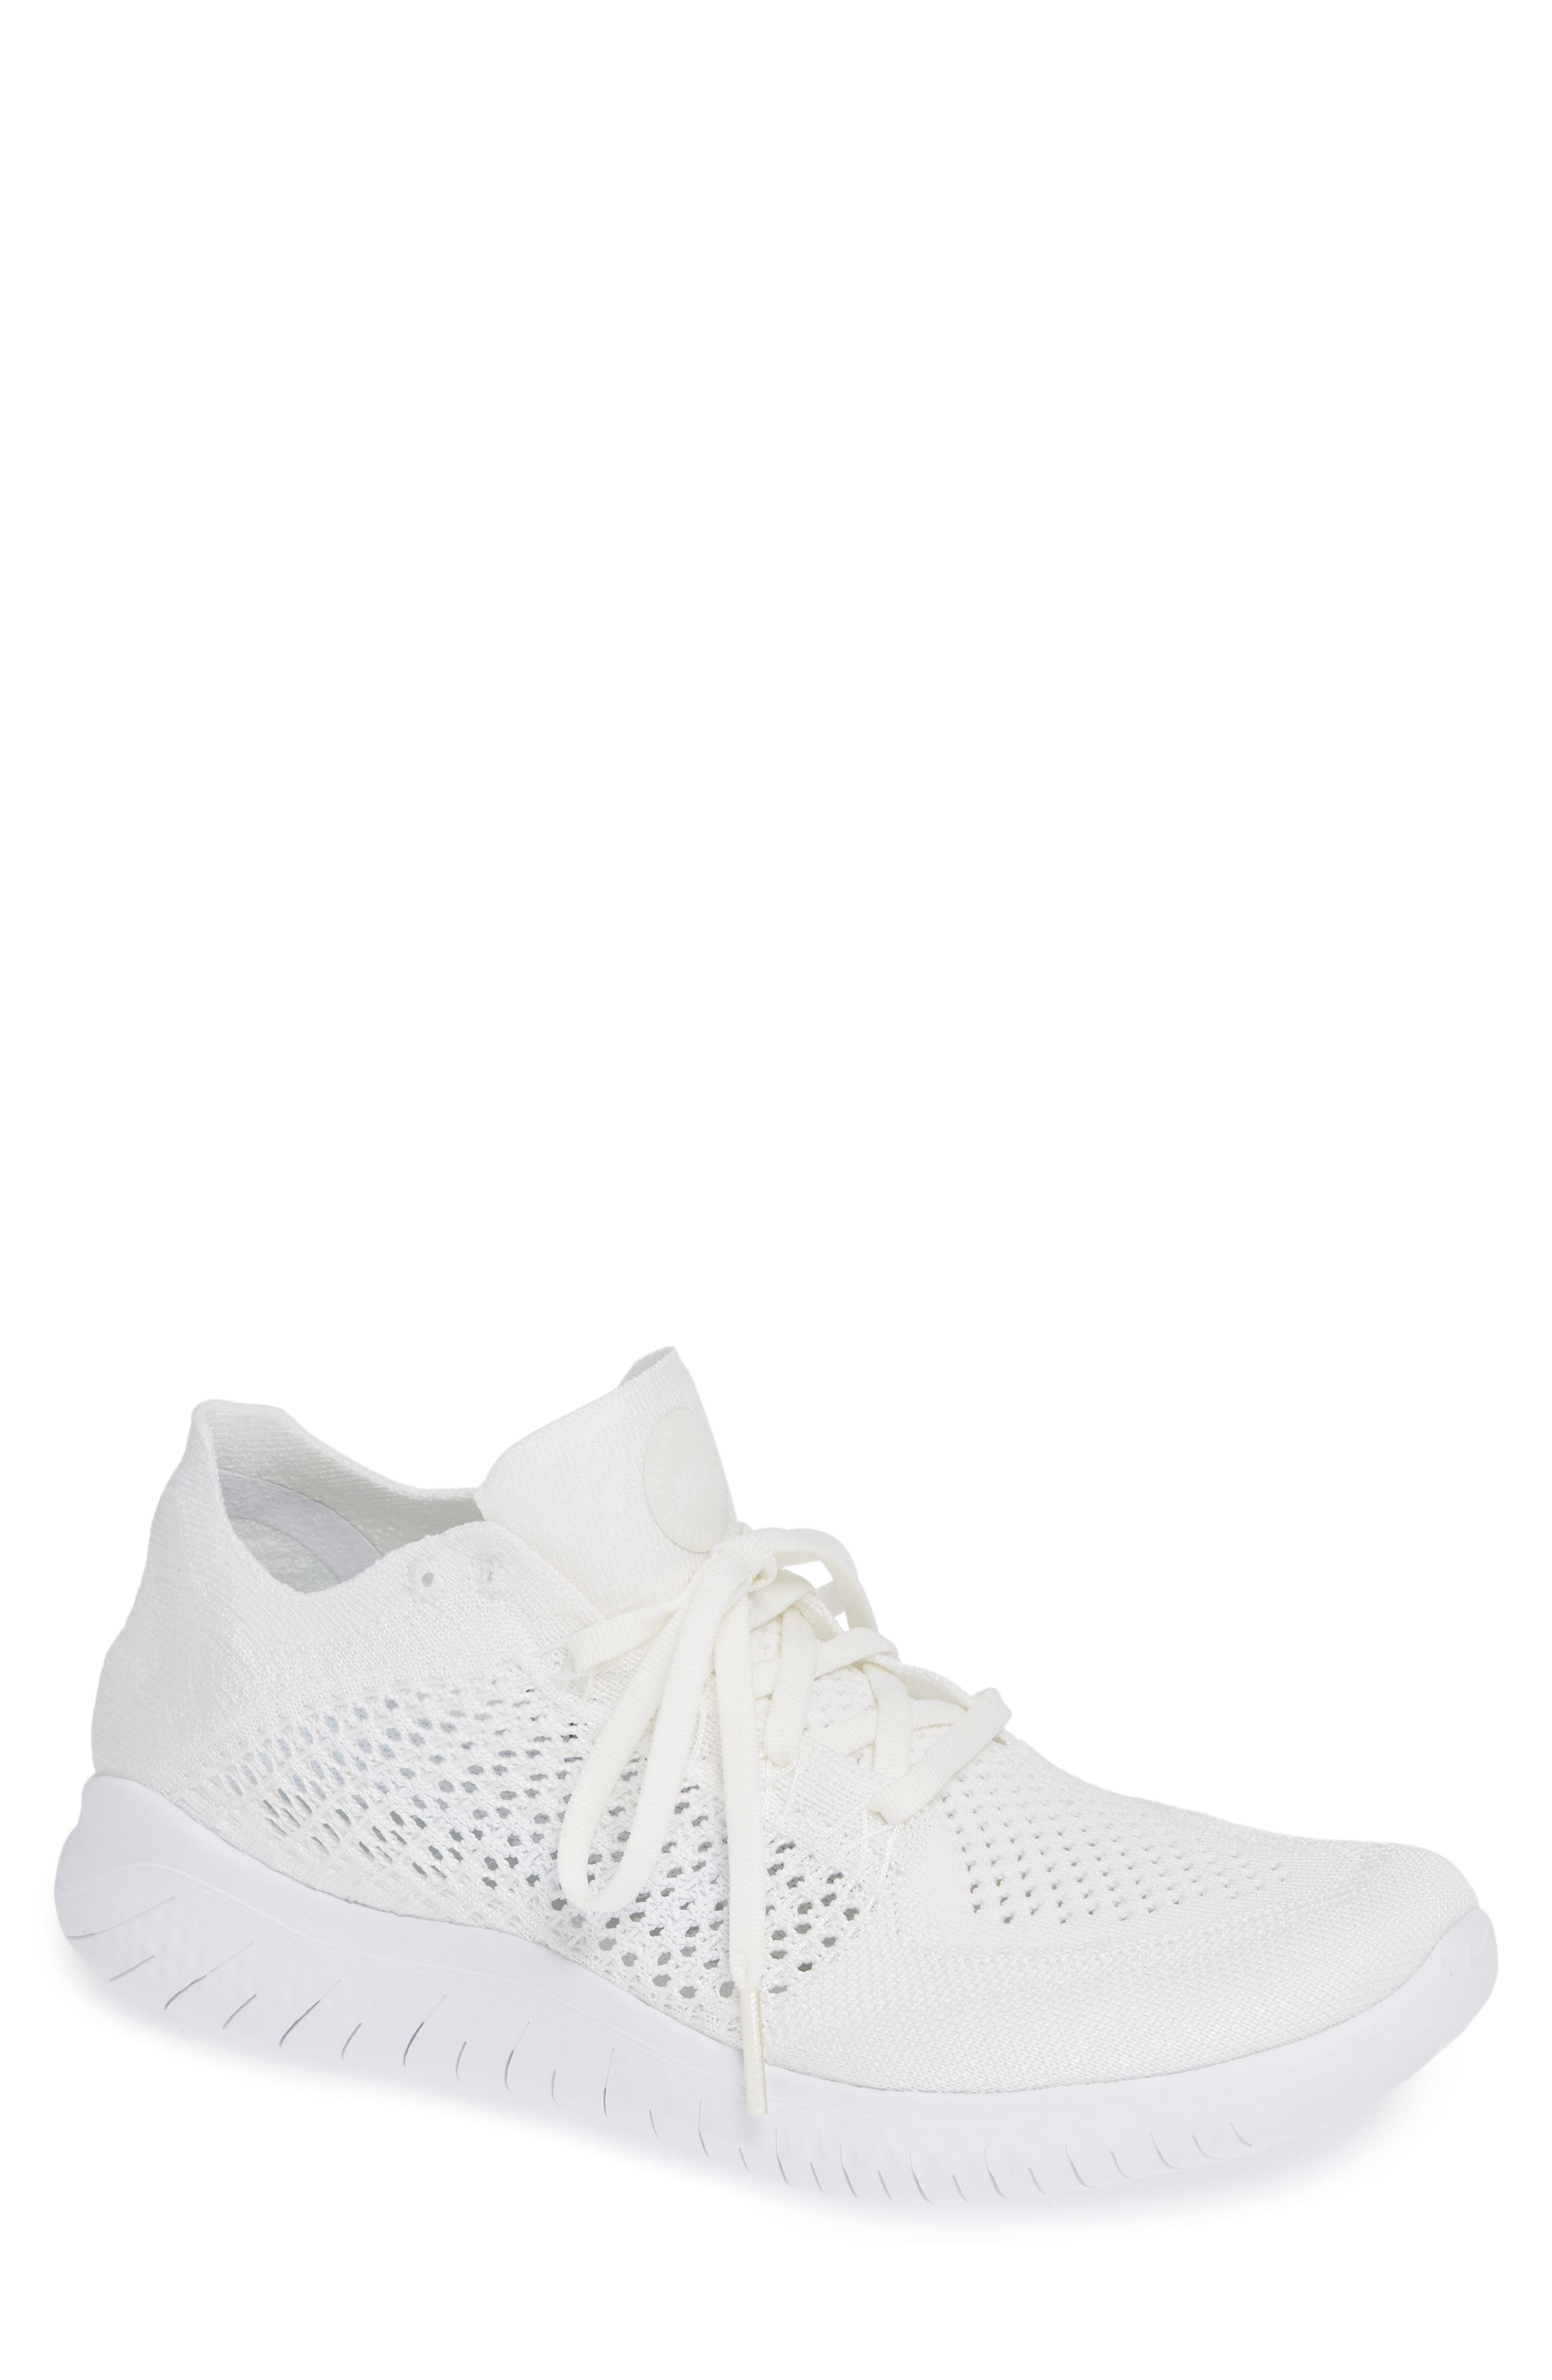 NIKE Free RN Flyknit 2018 Running Shoe, Main, color, WHITE/ WHITE